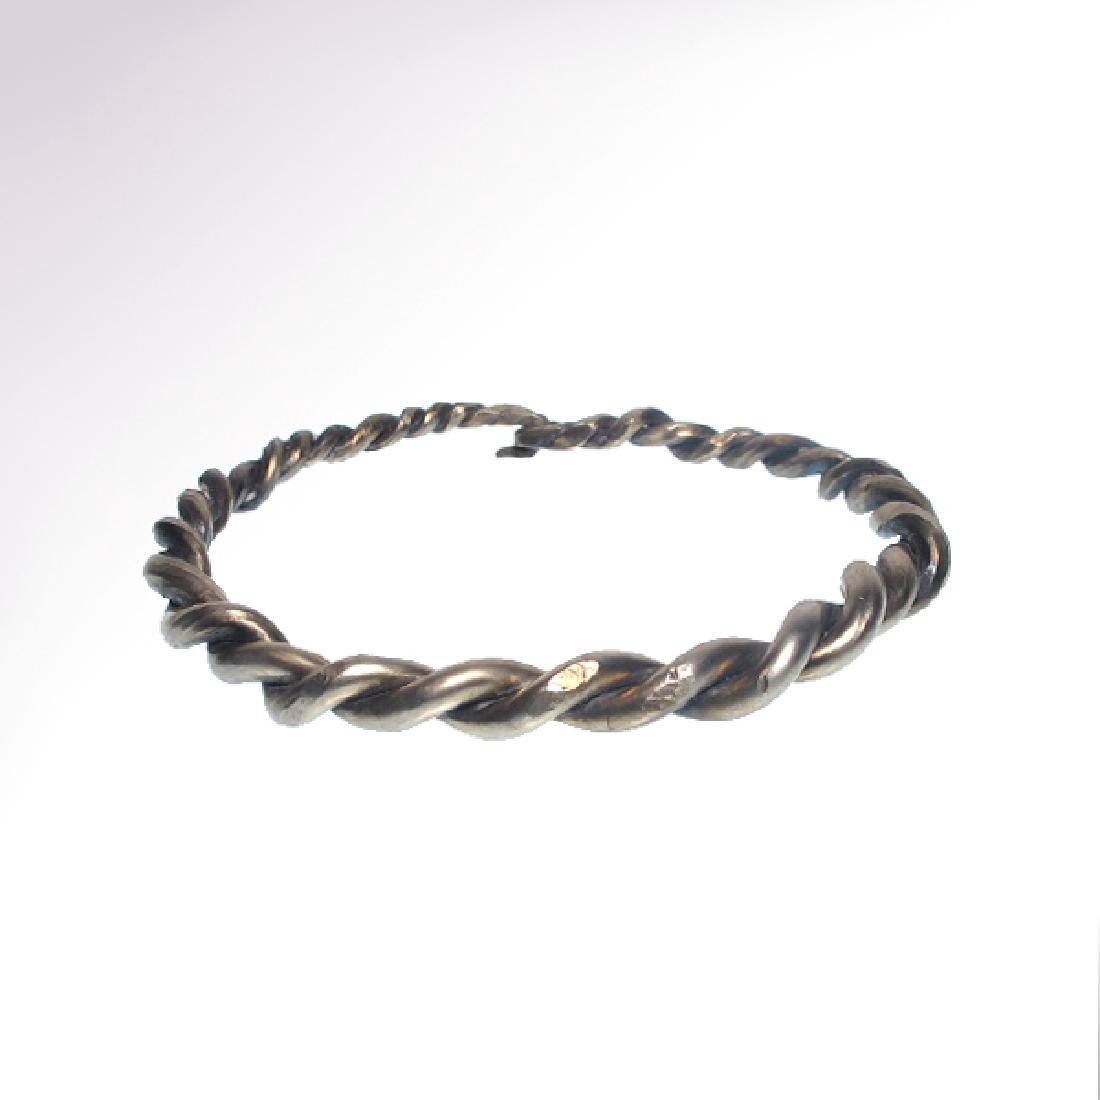 Viking Solid Silver Bracelet, c. 10th-11th Century A.D. - 2